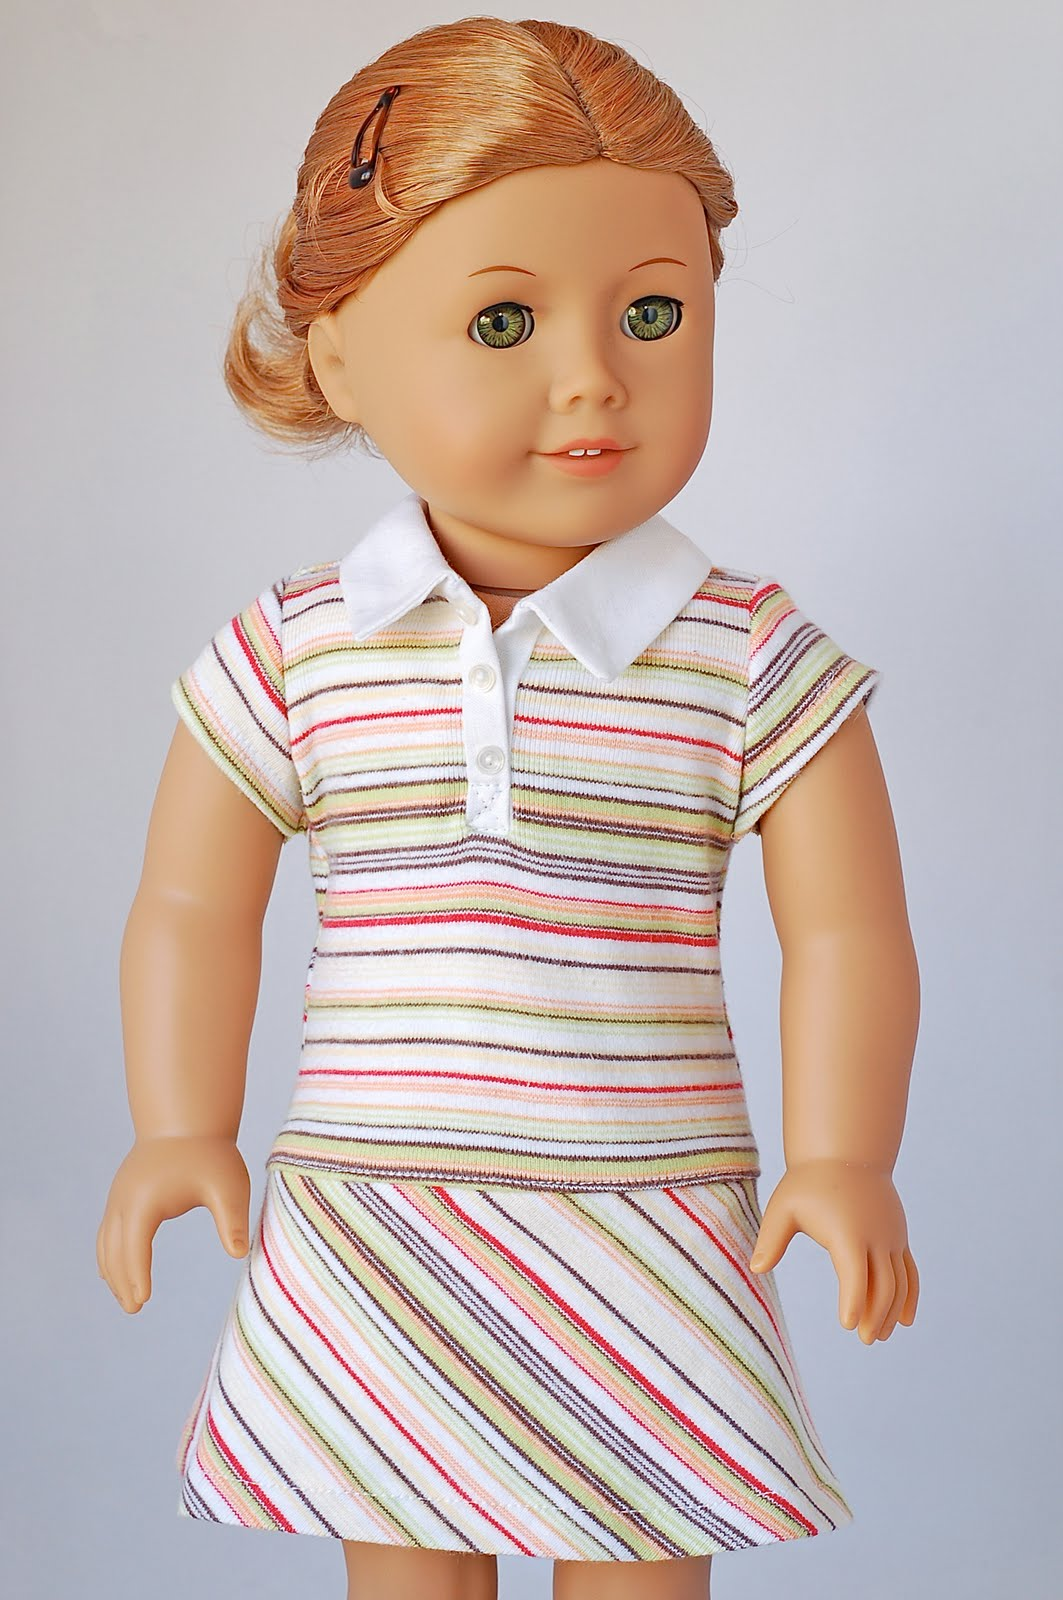 American Girl Doll Clothes Pattern Polo Shirt Dress | Liberty Jane Doll Clothes Patterns For ...